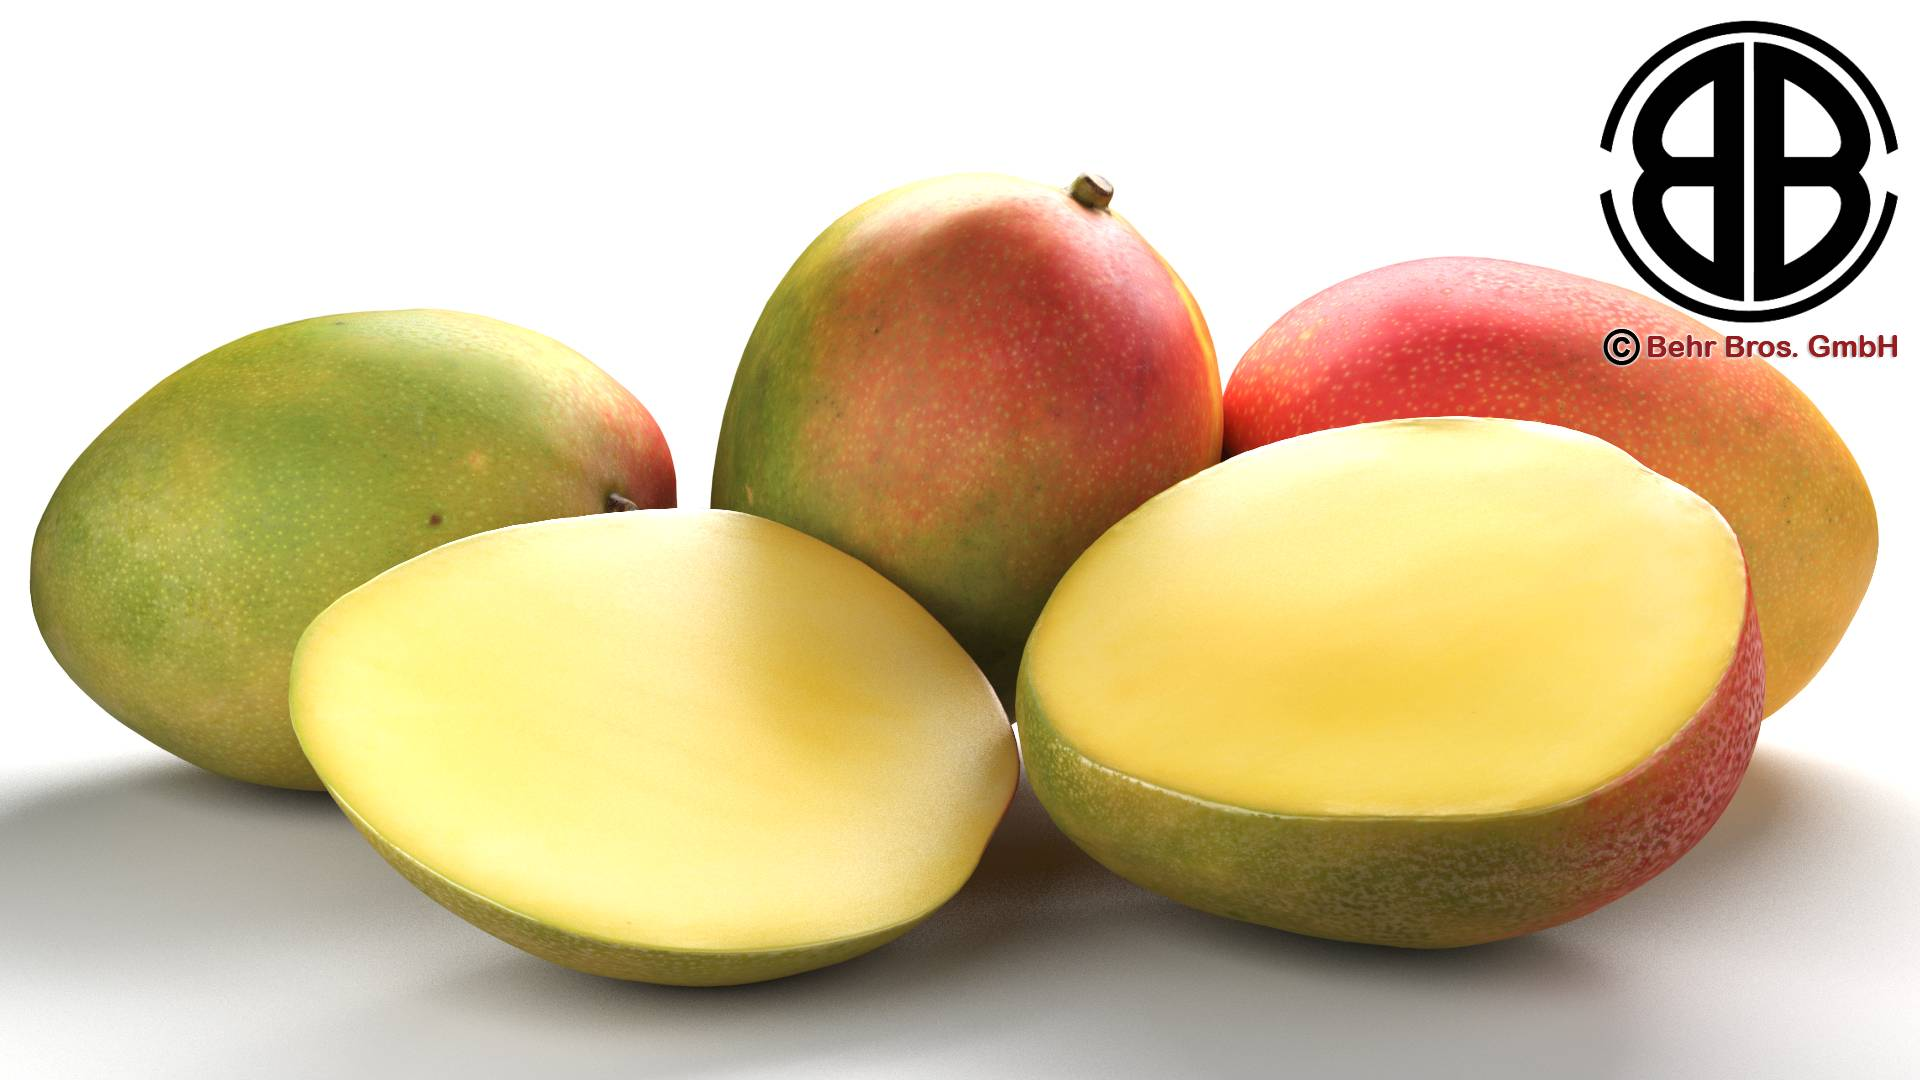 photo realistic mangos 3d model 3ds max fbx c4d lwo ma mb obj 217596